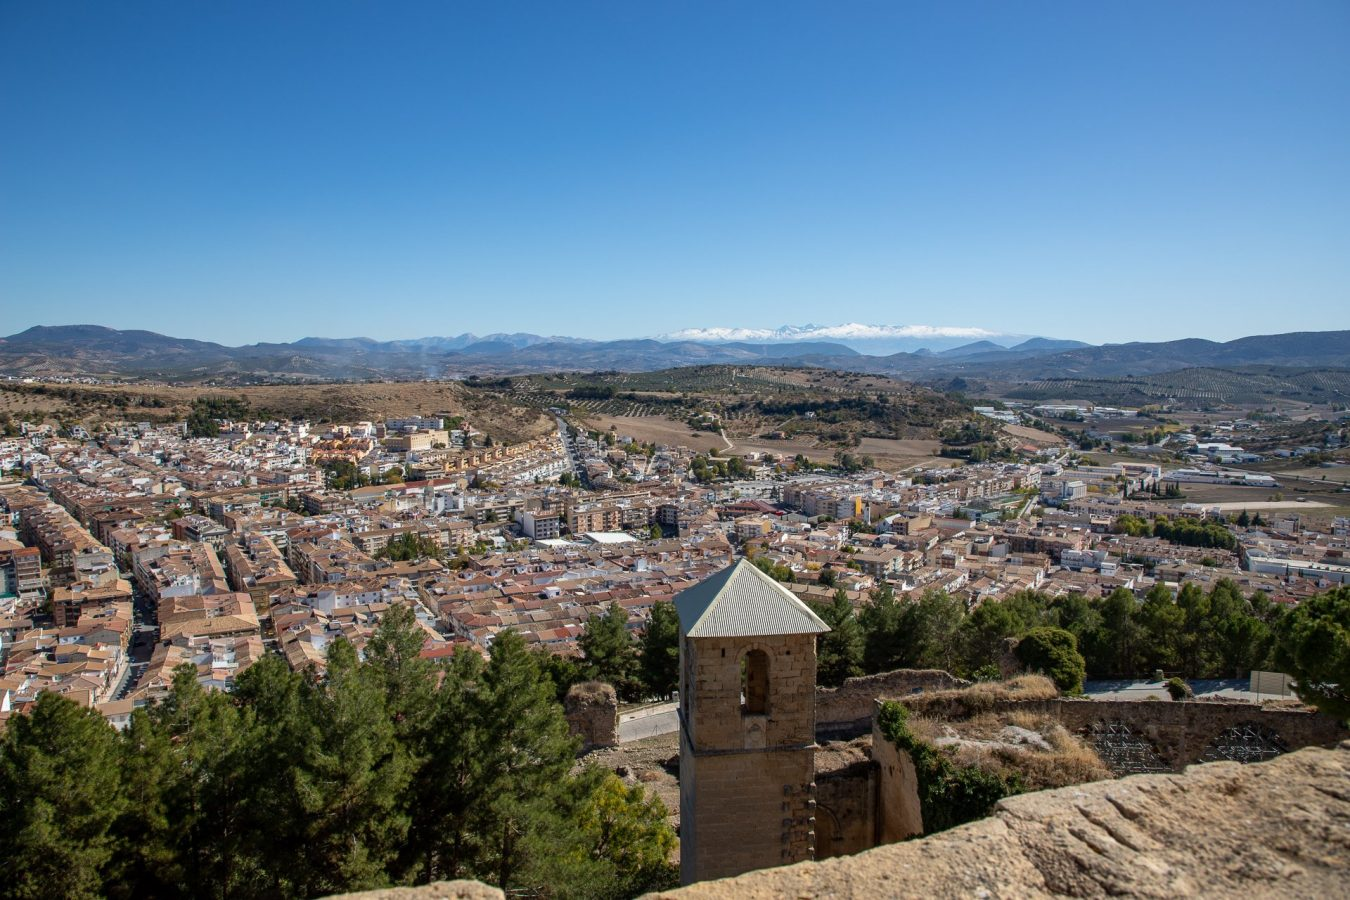 Looking over Alcala la Real from La Mota